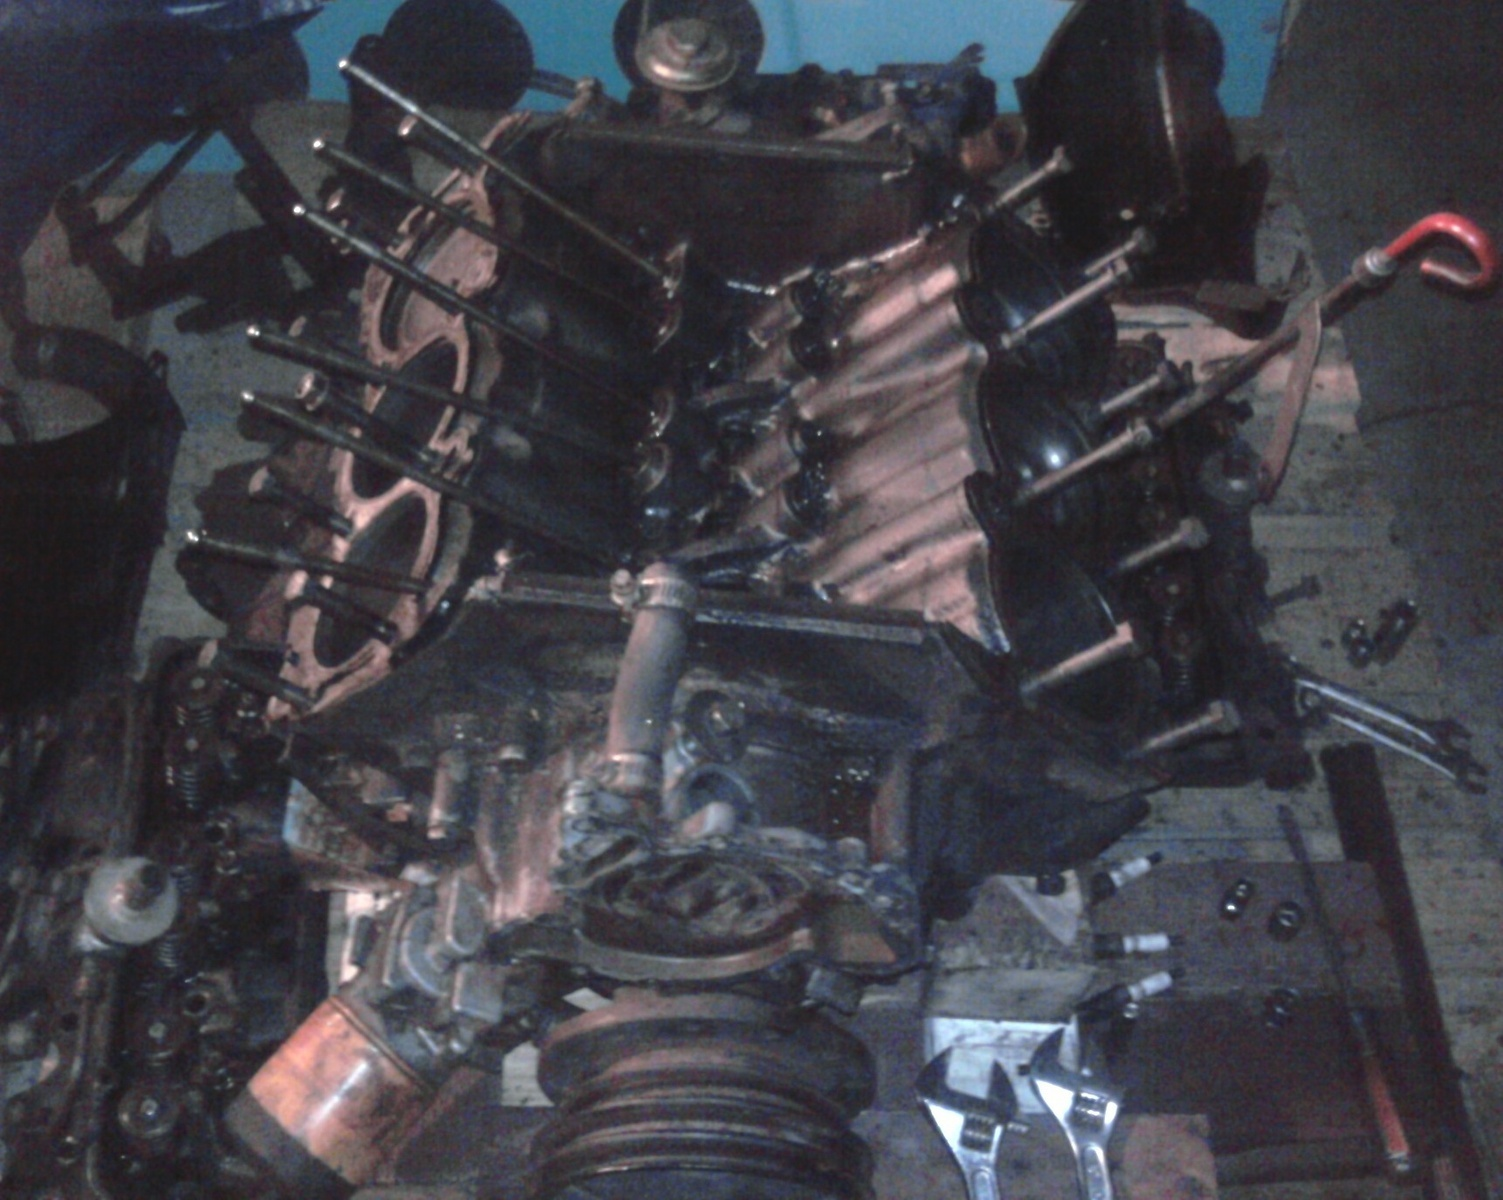 buick skylark questions 1976 skylark s r cargurusit\u0027s like stepping back in a time machine, it\u0027s awesome! pulled almost all original pieces and they all are still good to use, the valves, pushrods and